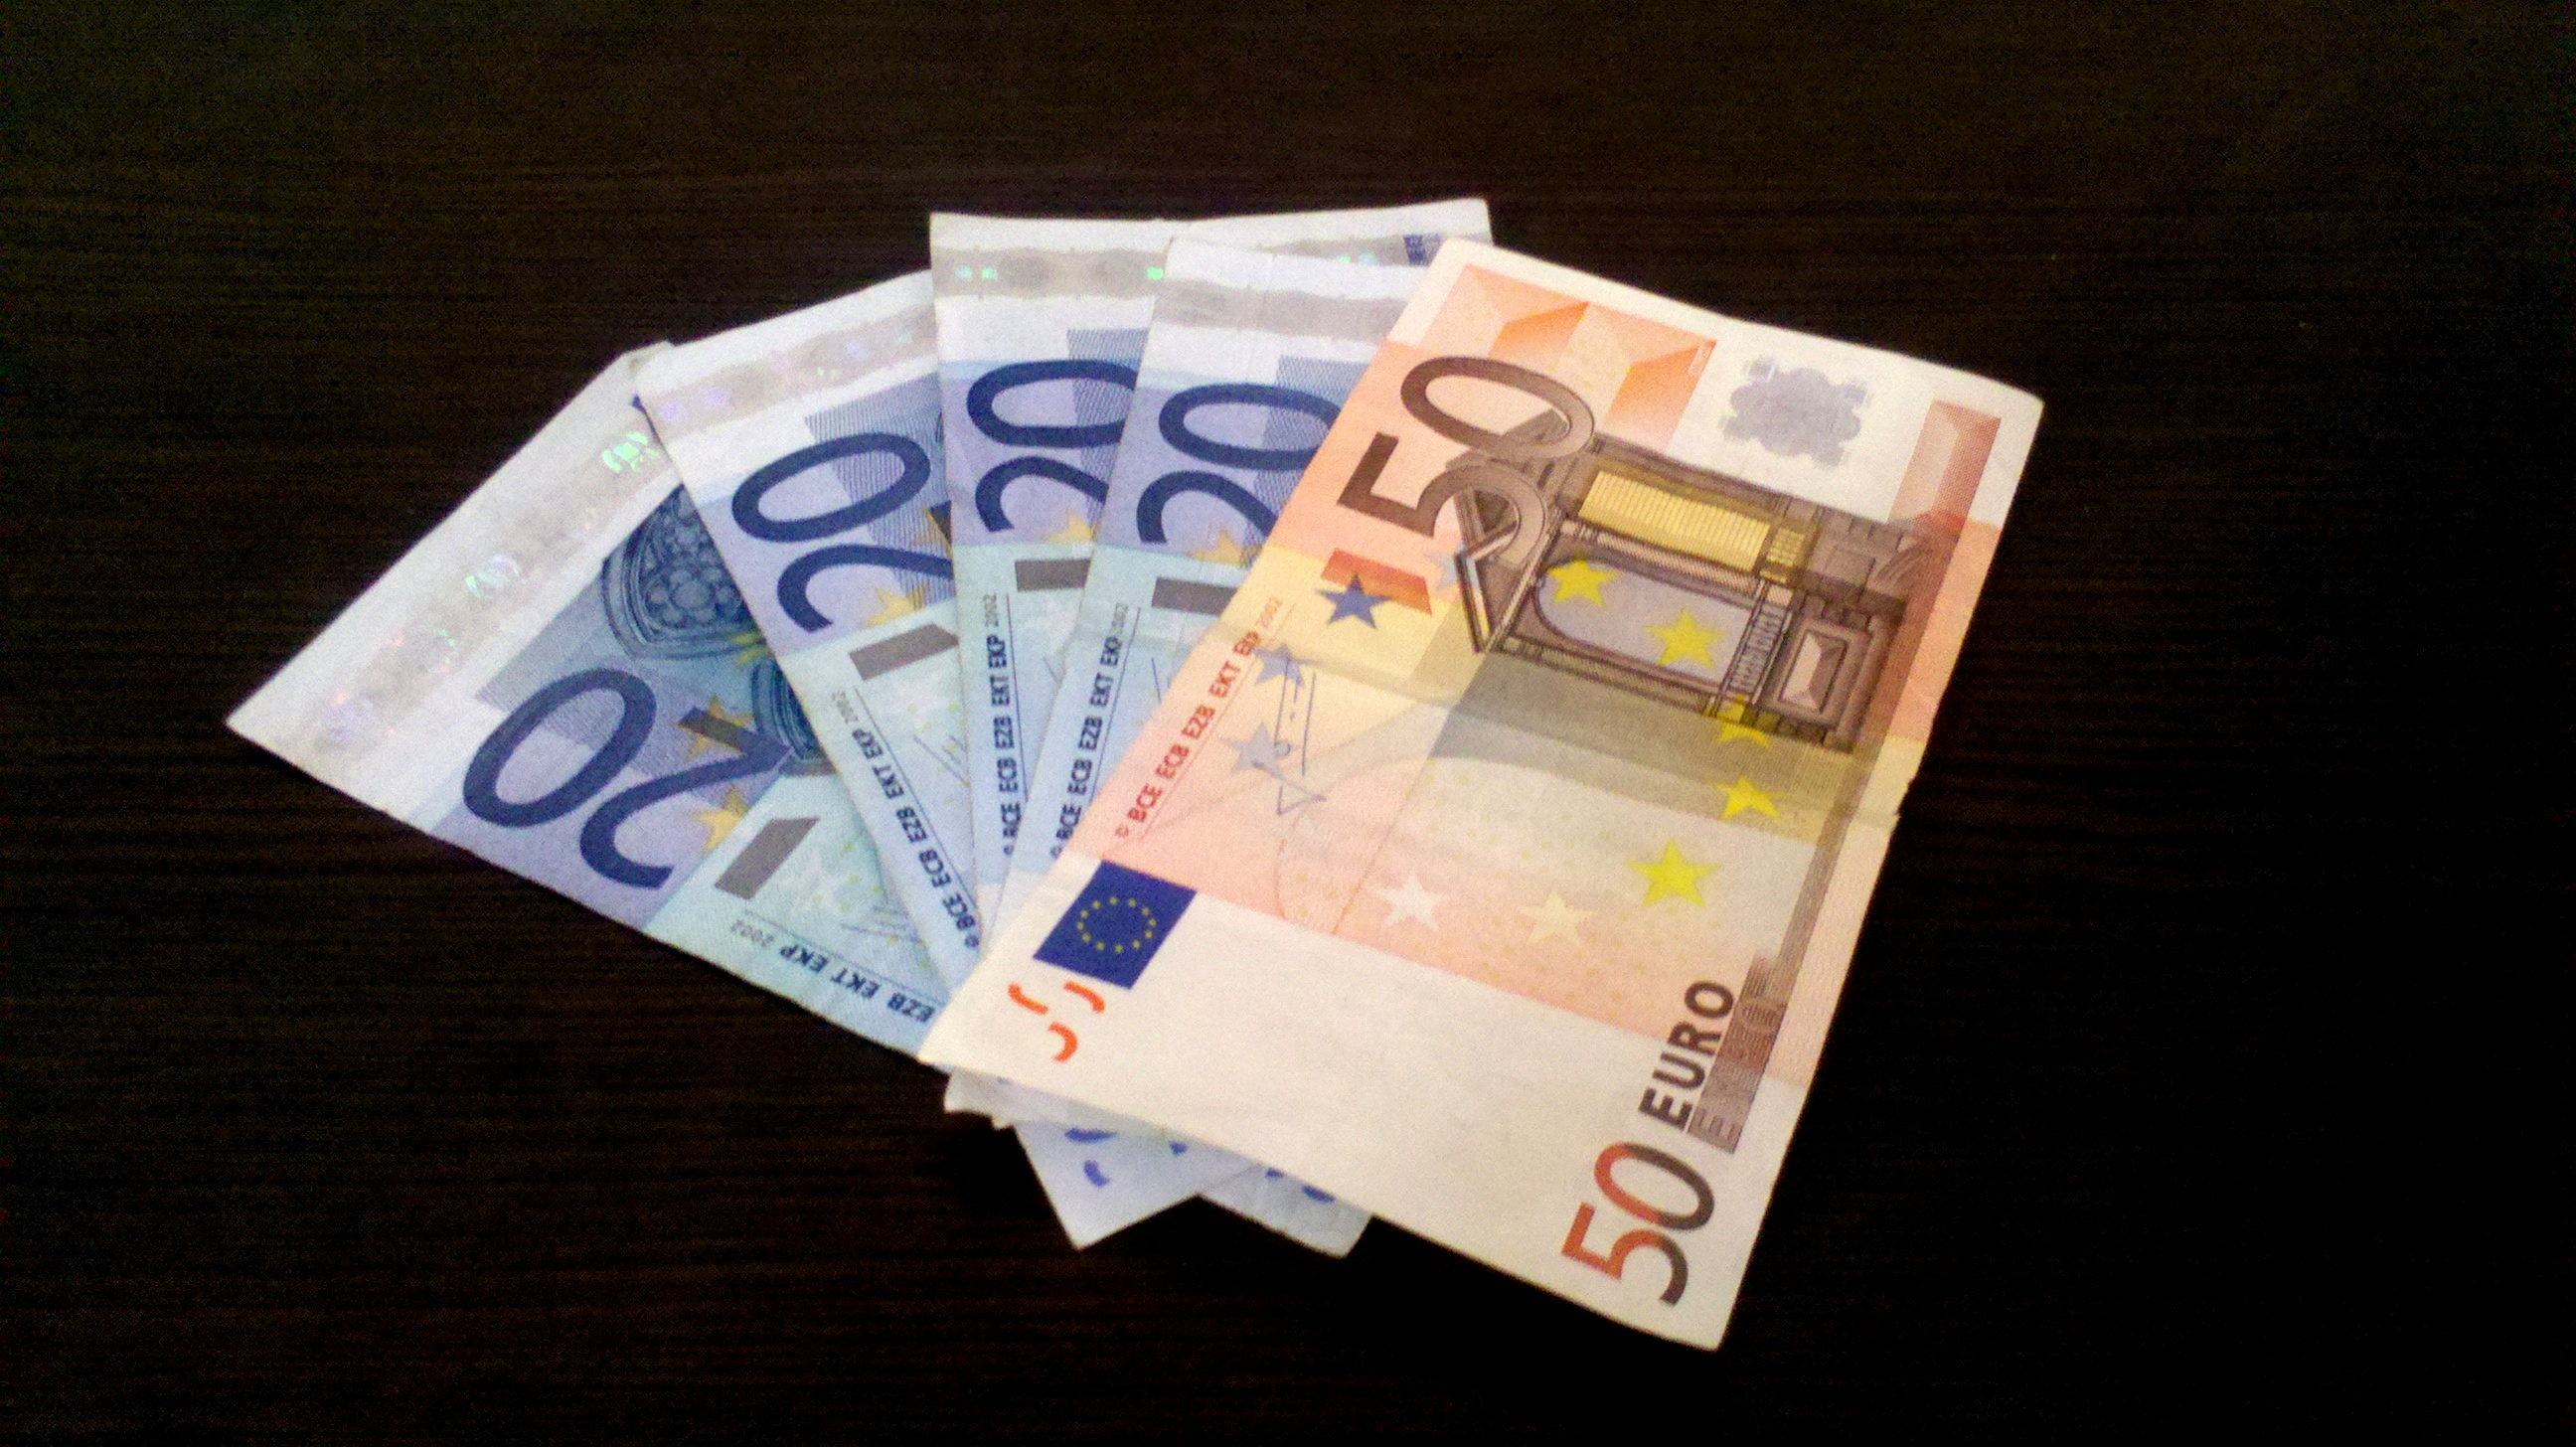 Euro banknotes - Wikipedia, the free encyclopedia